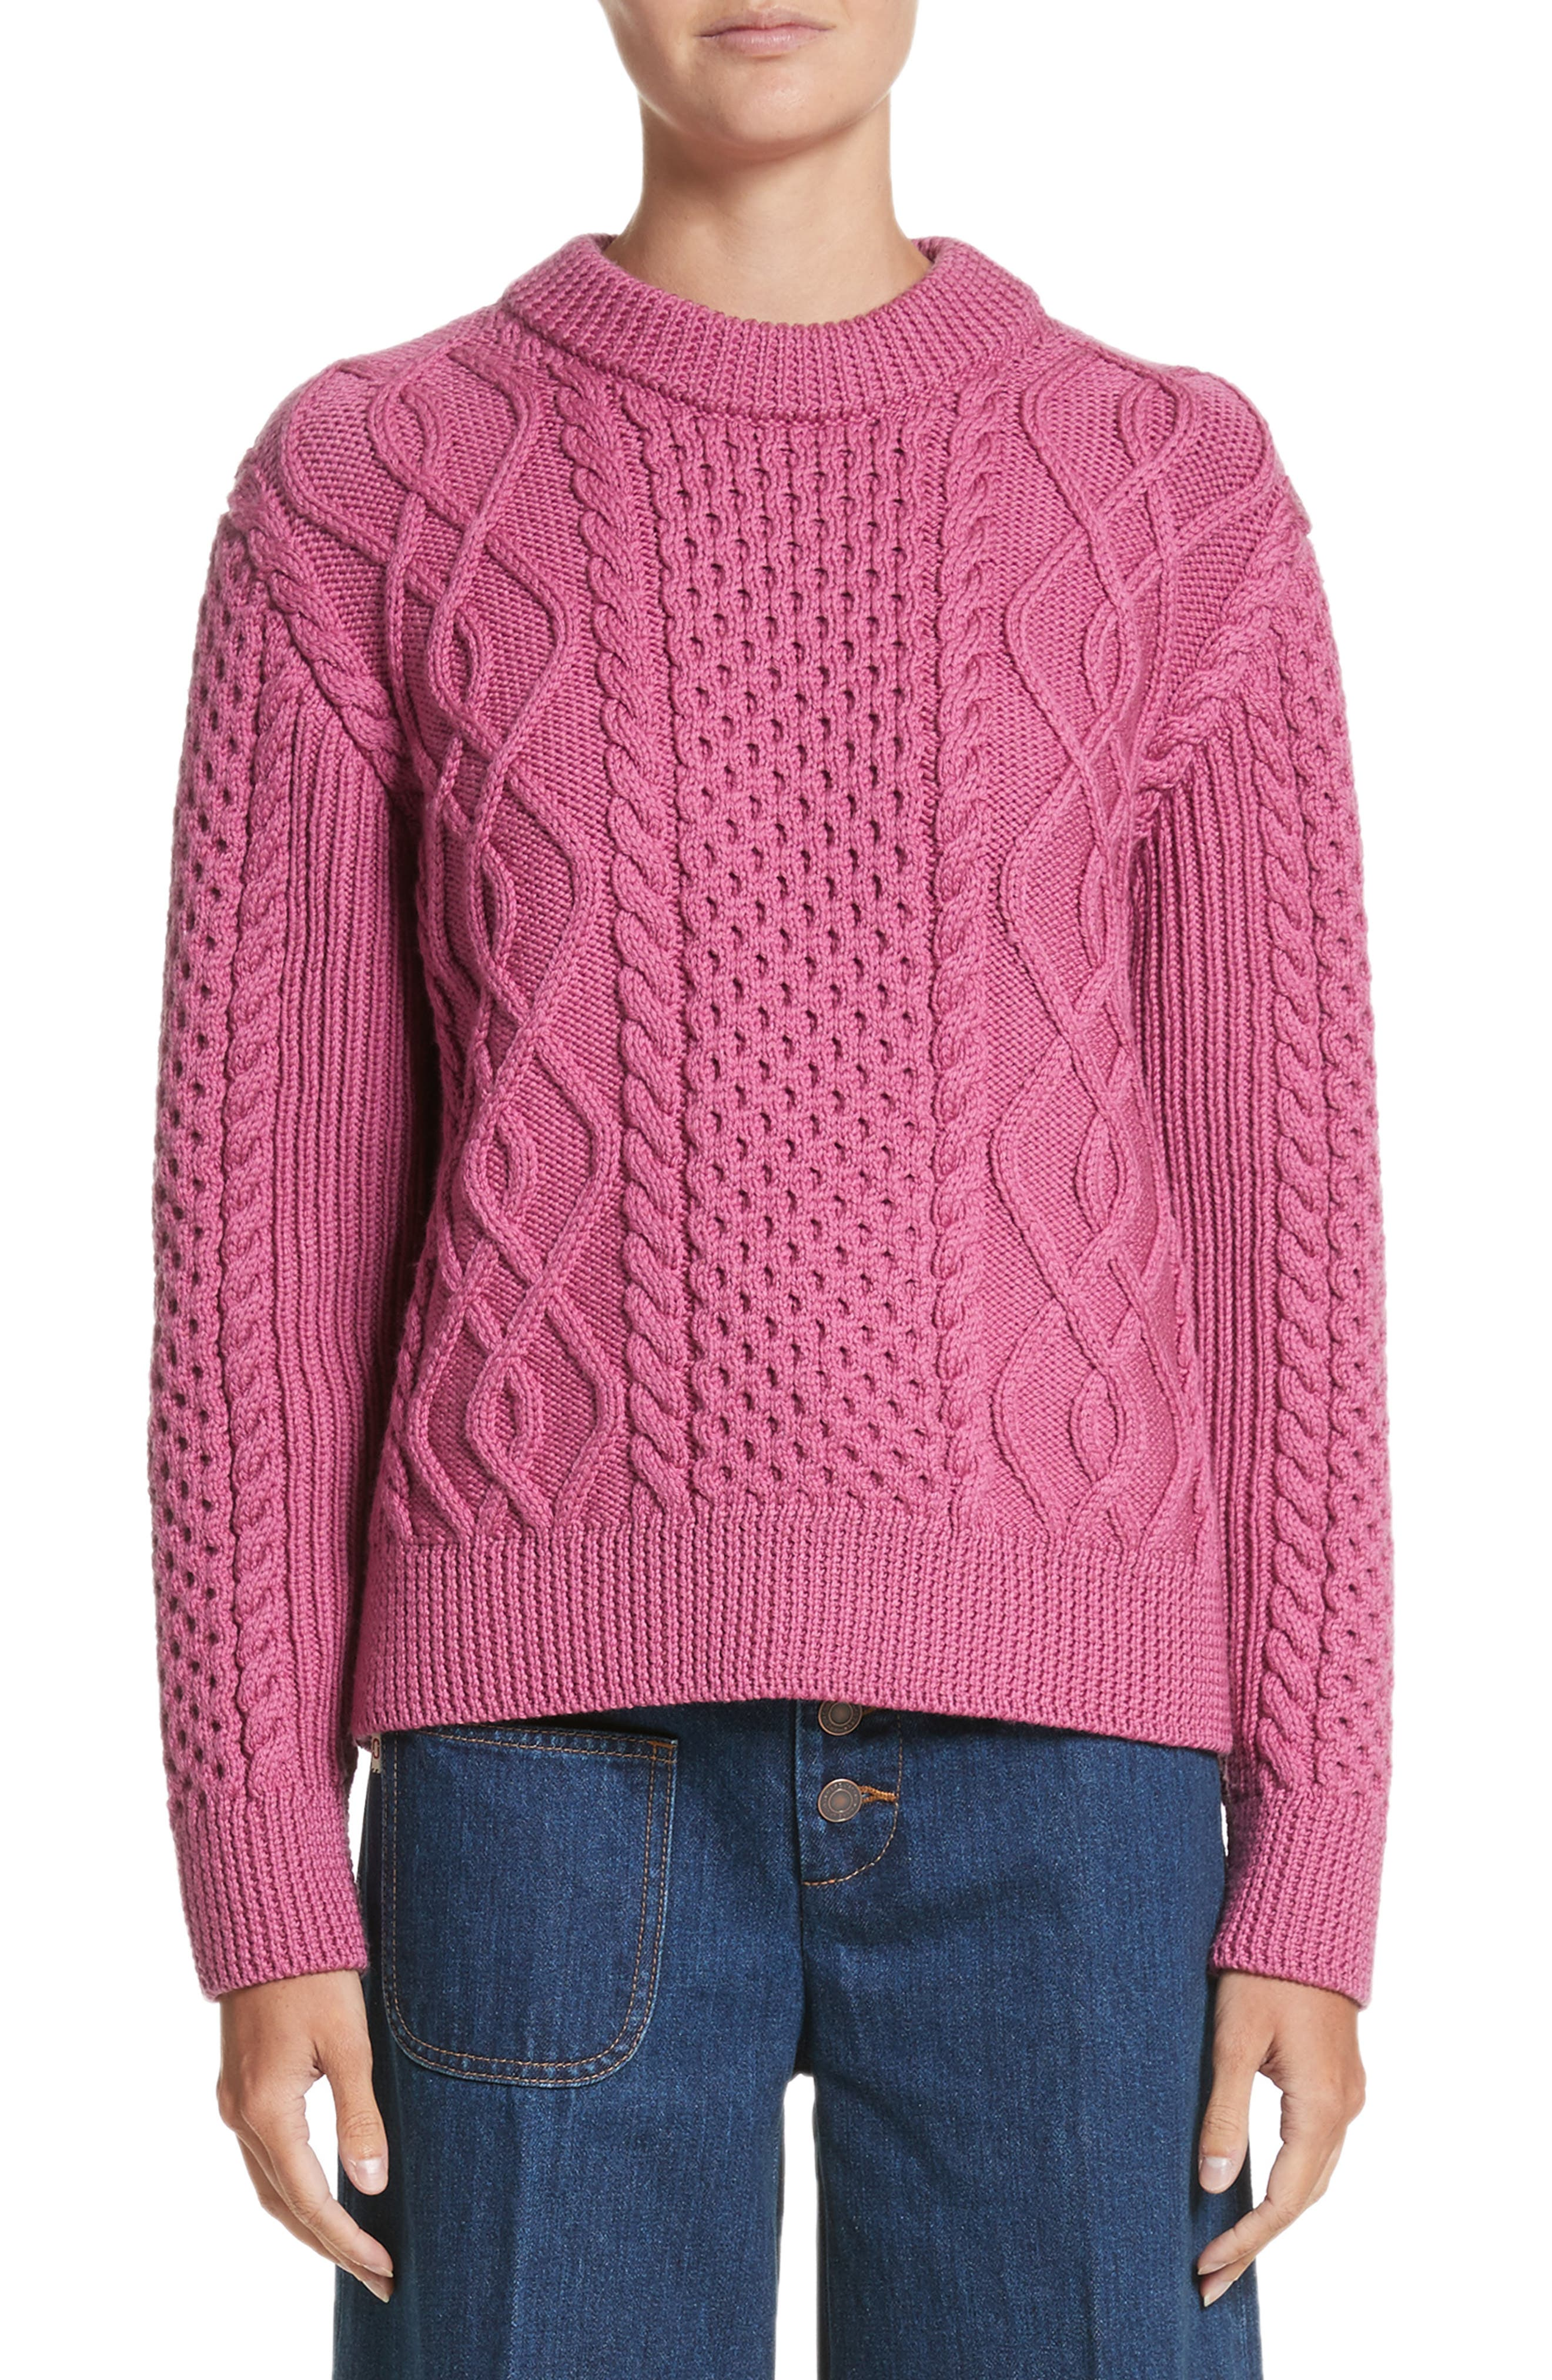 Merino Wool Cable Knit Sweater,                             Main thumbnail 1, color,